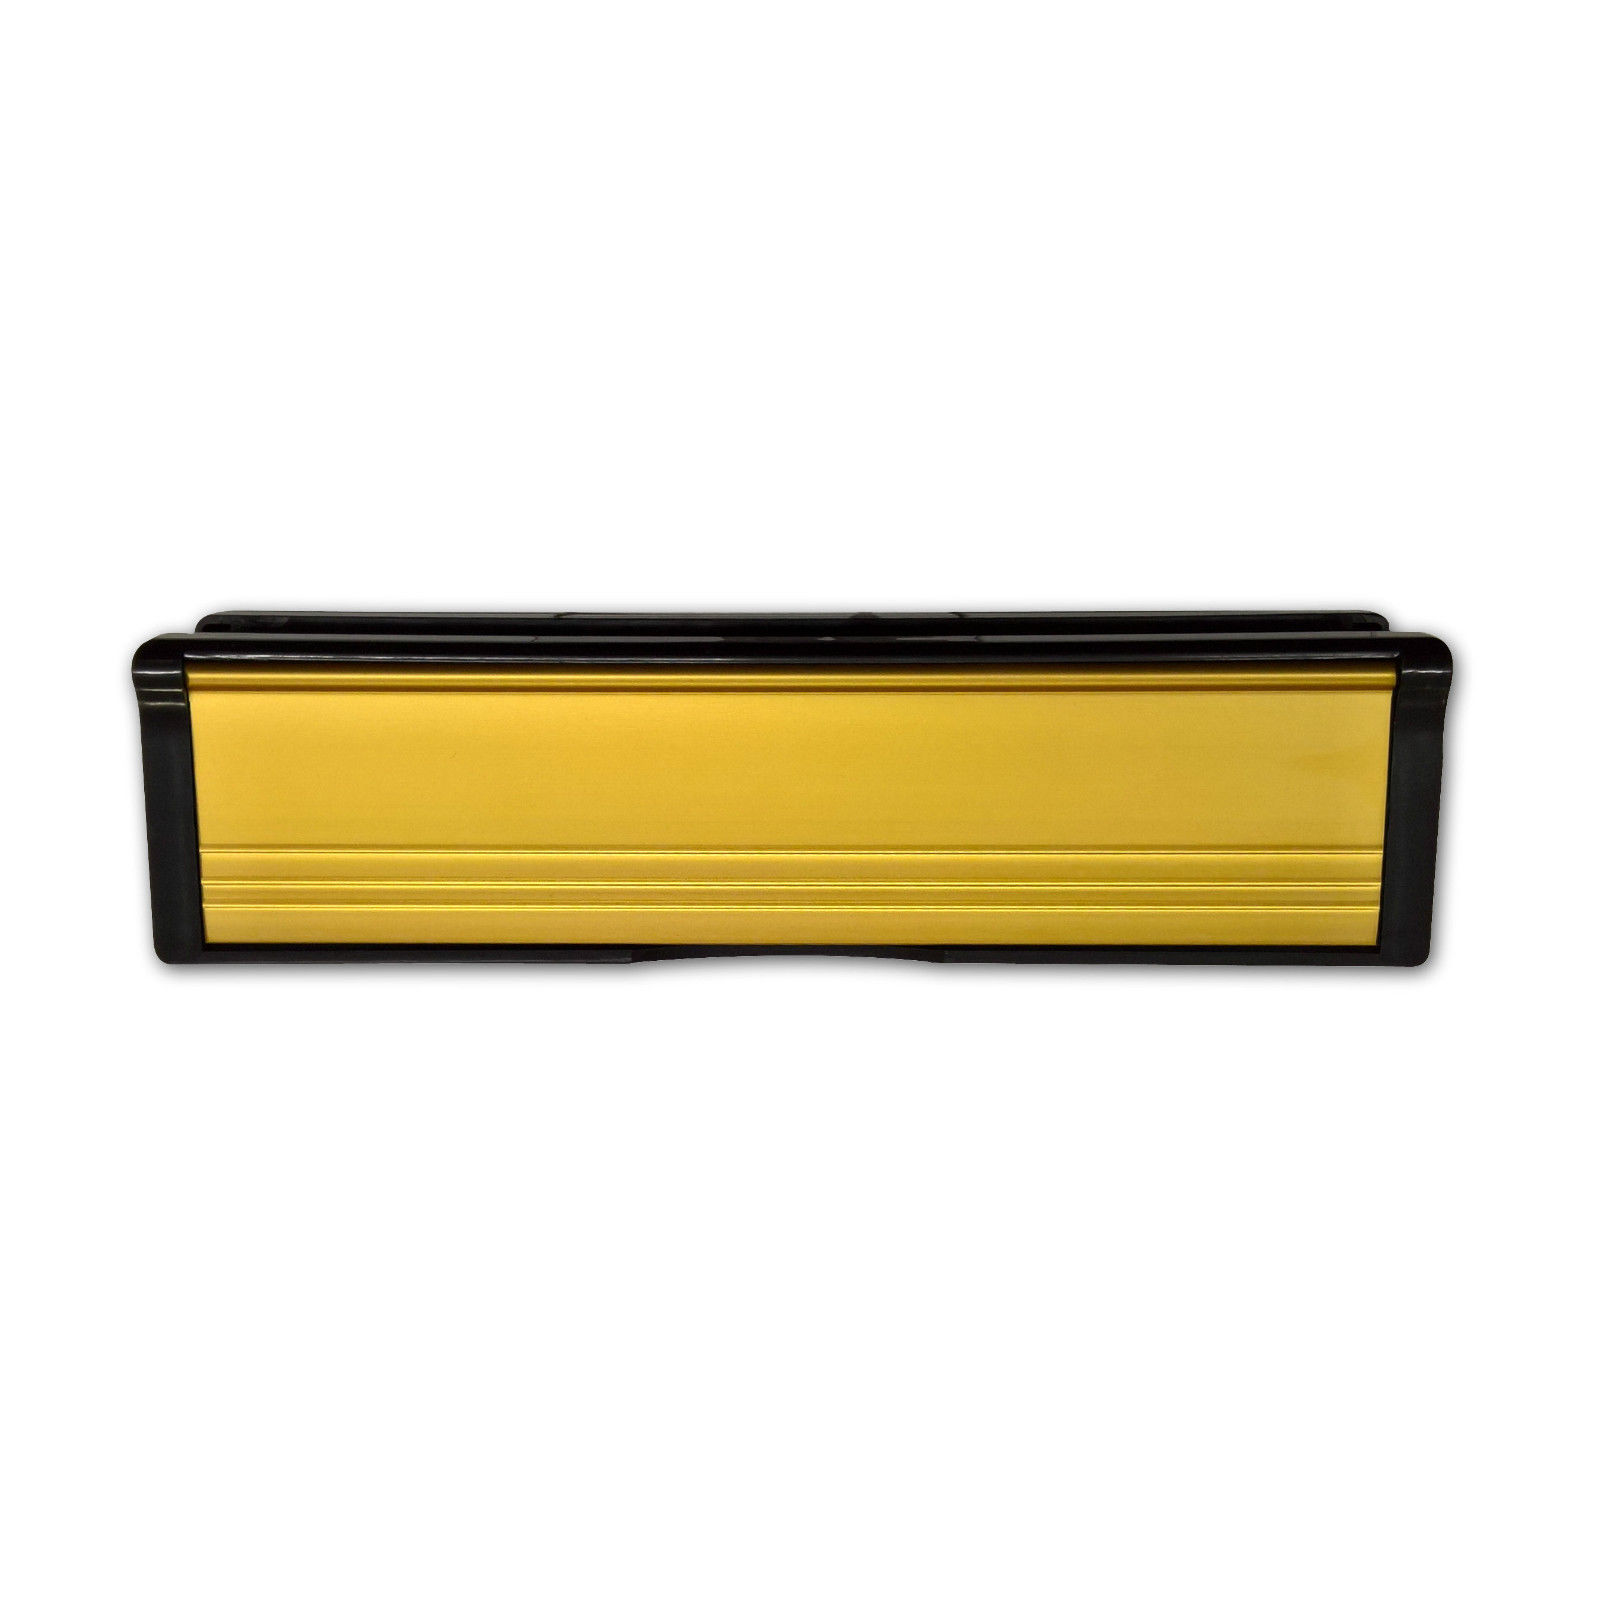 10 Amp 12 Inch Letter Plate Letter Box For UPVC Double